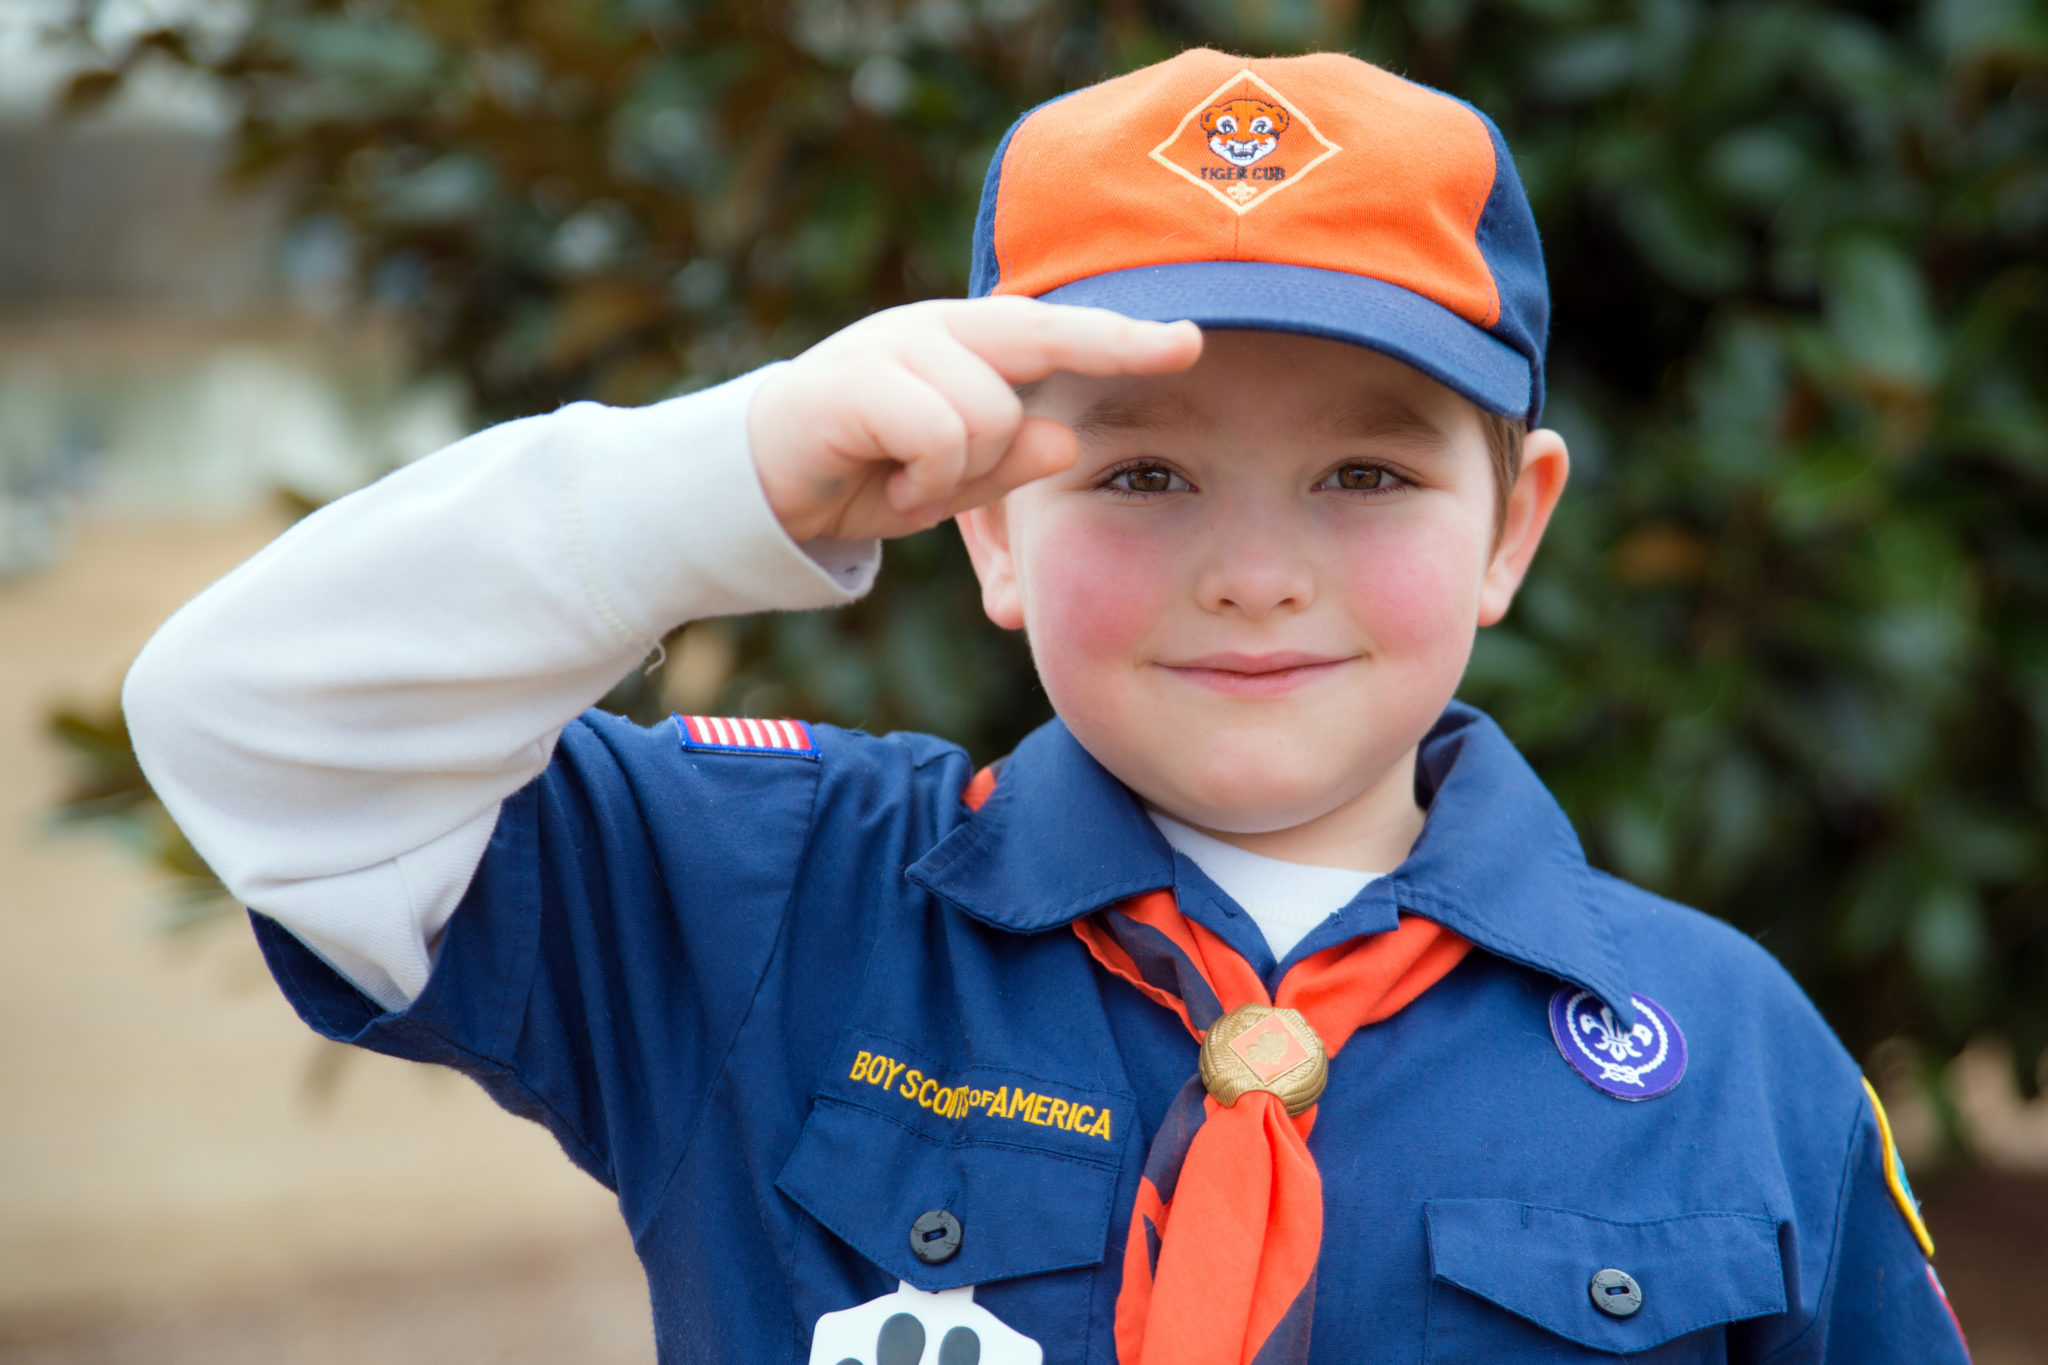 10 Reasons the Boy Scouts Should Not Admit Girls